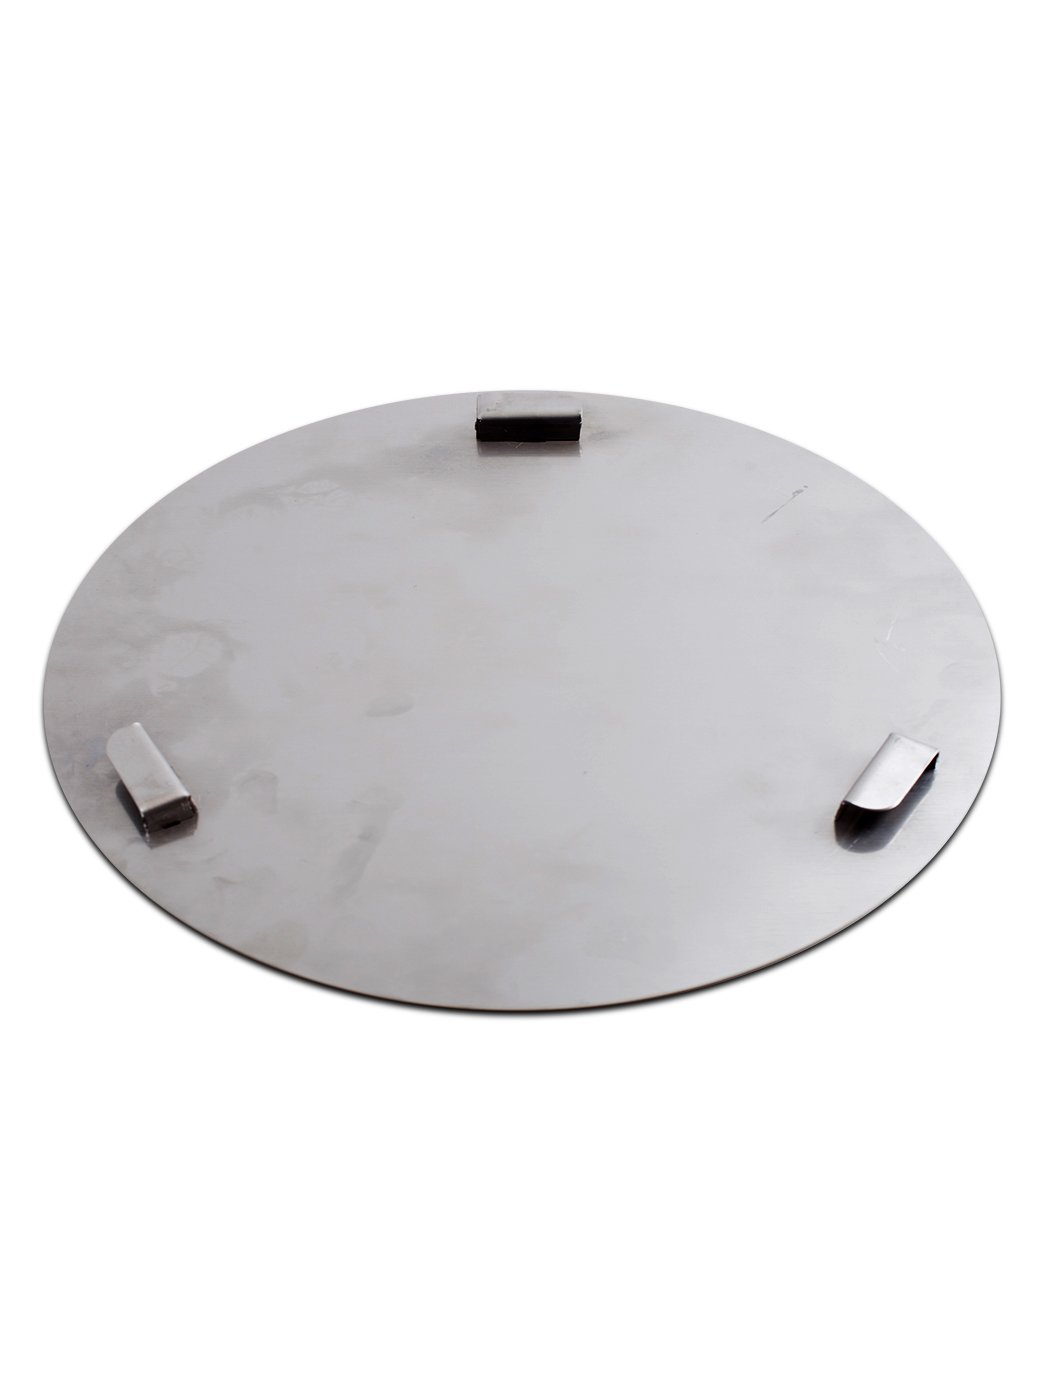 18.5'' Pit Barrel Cooker Ash Pan